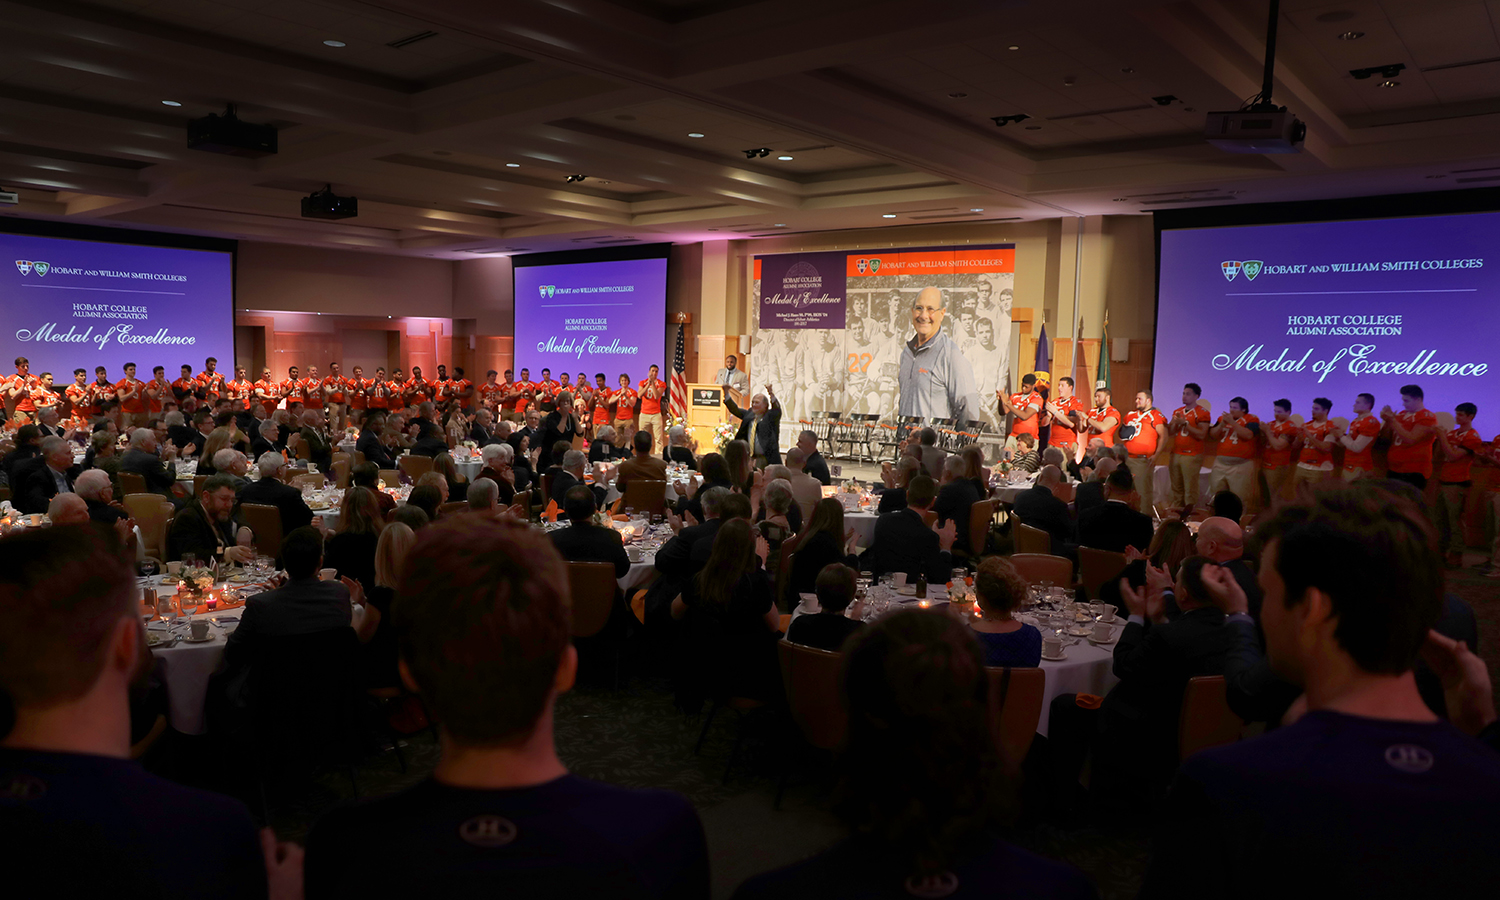 During a toast presented by Al Smith '19, members of Hobart Athletics processed in to the Vandervort Room, on behalf of Statesmen across the country, to celebrate the leadership of Michael J. Hanna '68, P'99, HON'04, who received the Hobart Medal of Excellence.